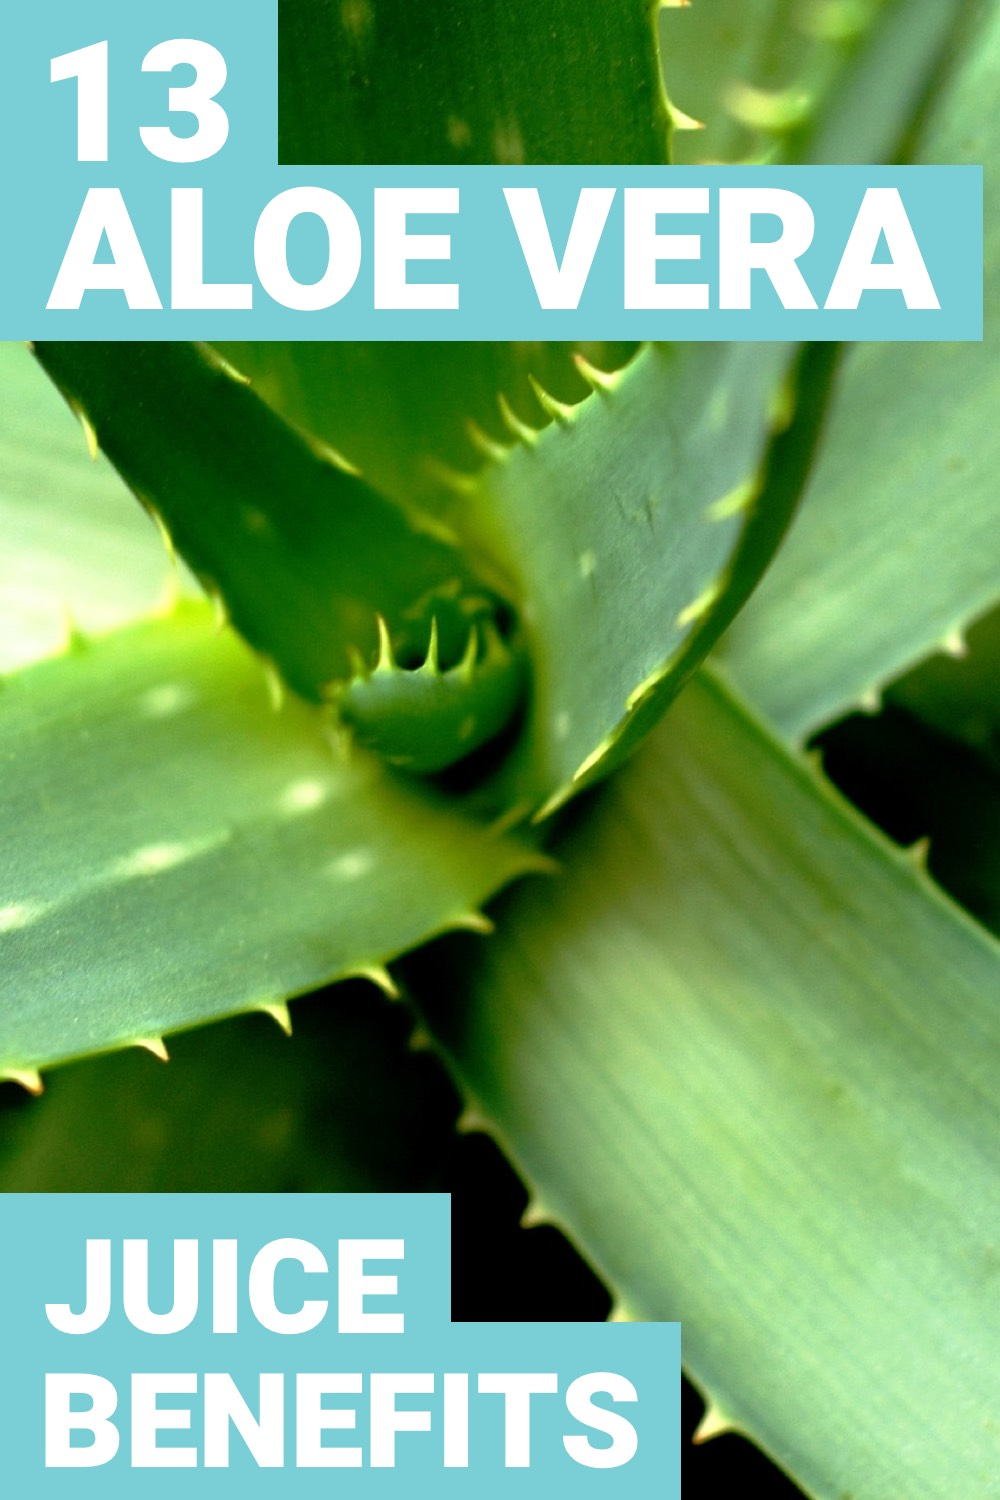 Is aloe vera juice good for you? You might be wondering this. Here are 13 benefits of aloe vera juice that'll greatly improve your health.